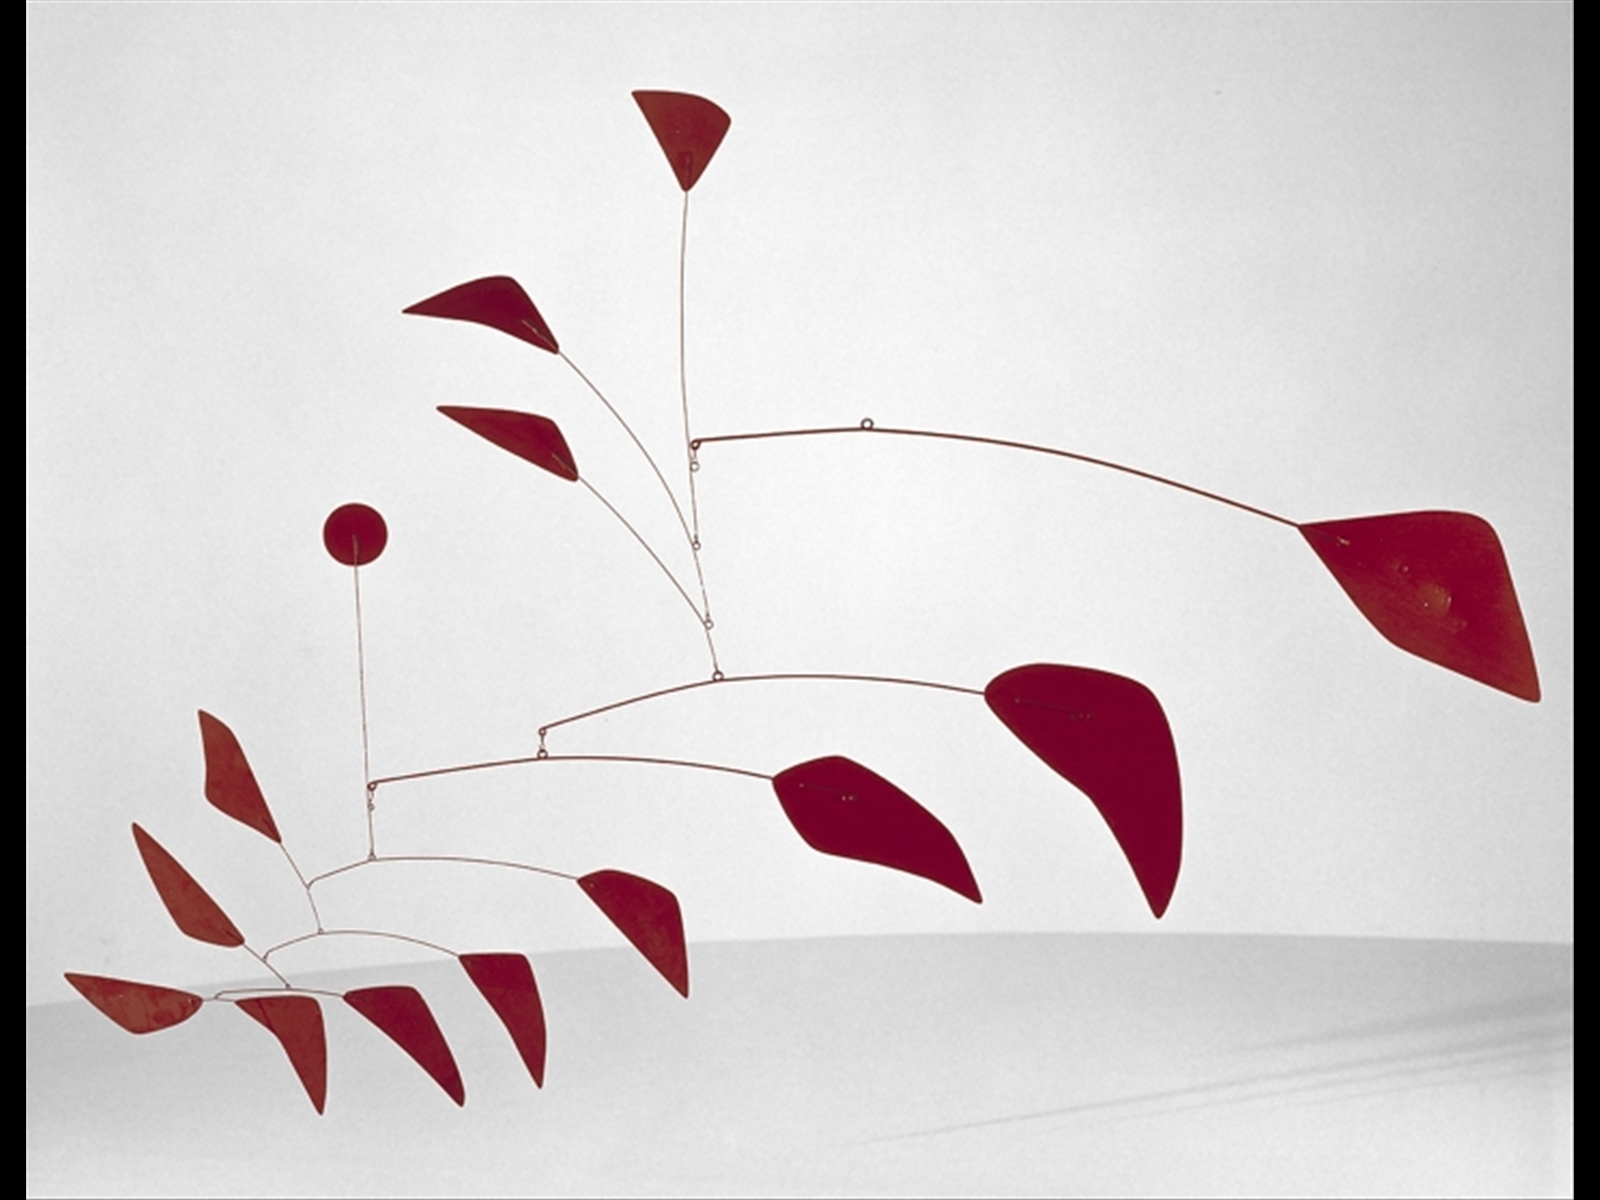 Big Red, 1959. Whitney Museum of American Art, New York; Acquisto, con i fondi dal Friends of the Whitney Museum of American Art, e scambio, 1961  © 2009 Calder Foundation, New York by SIAE 2009